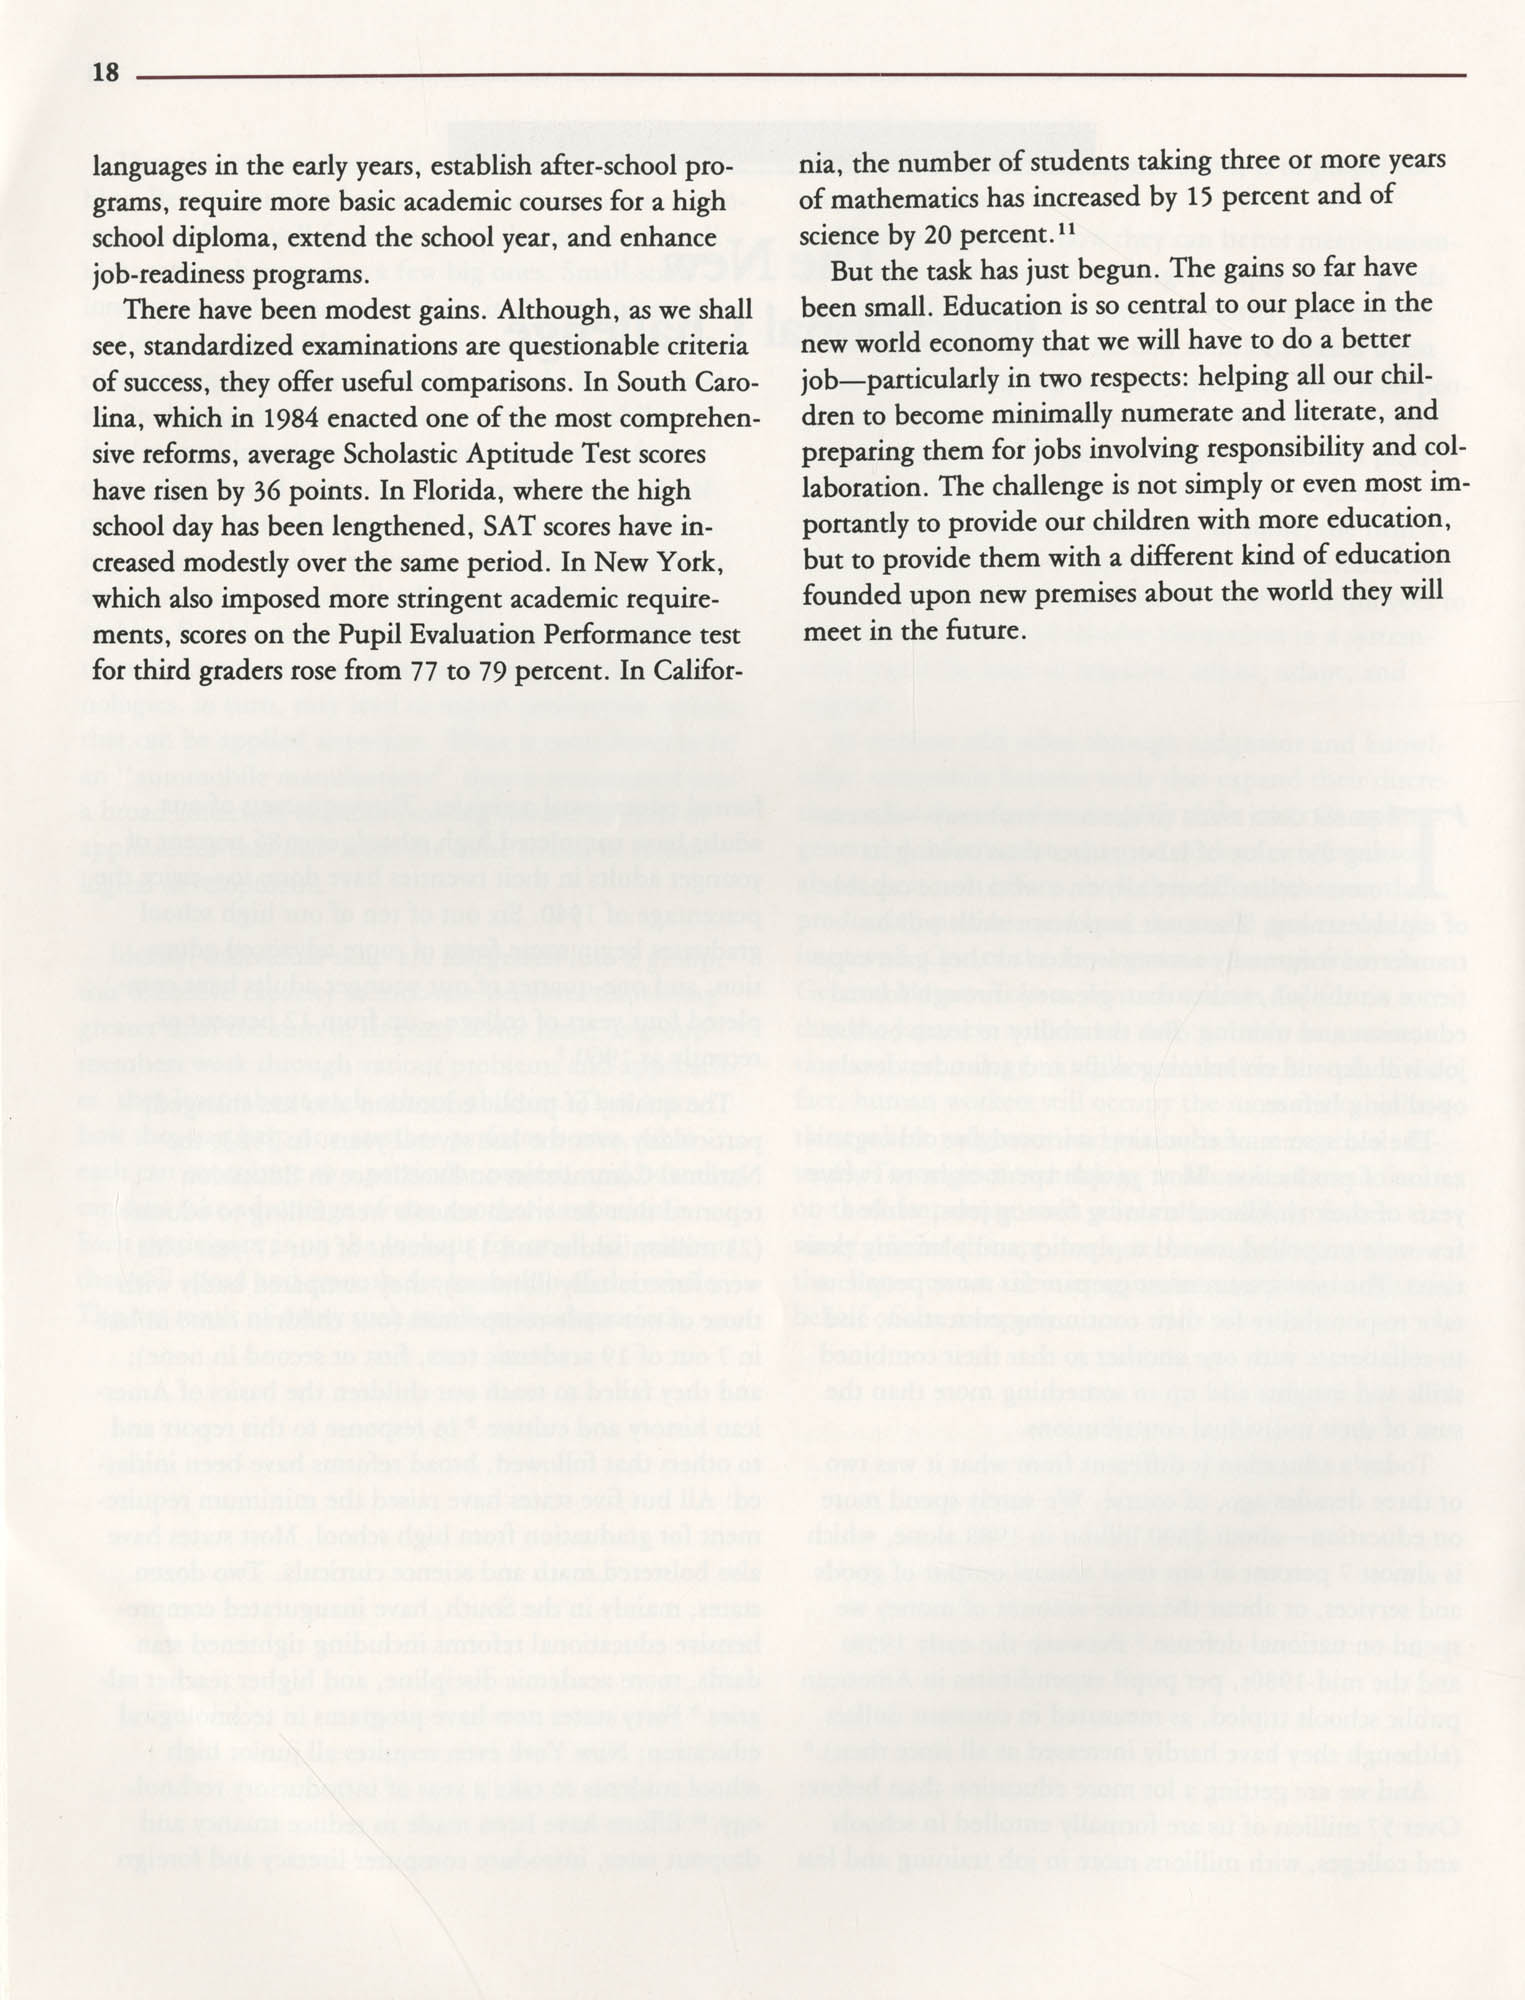 Education and the Next Economy, Page 18